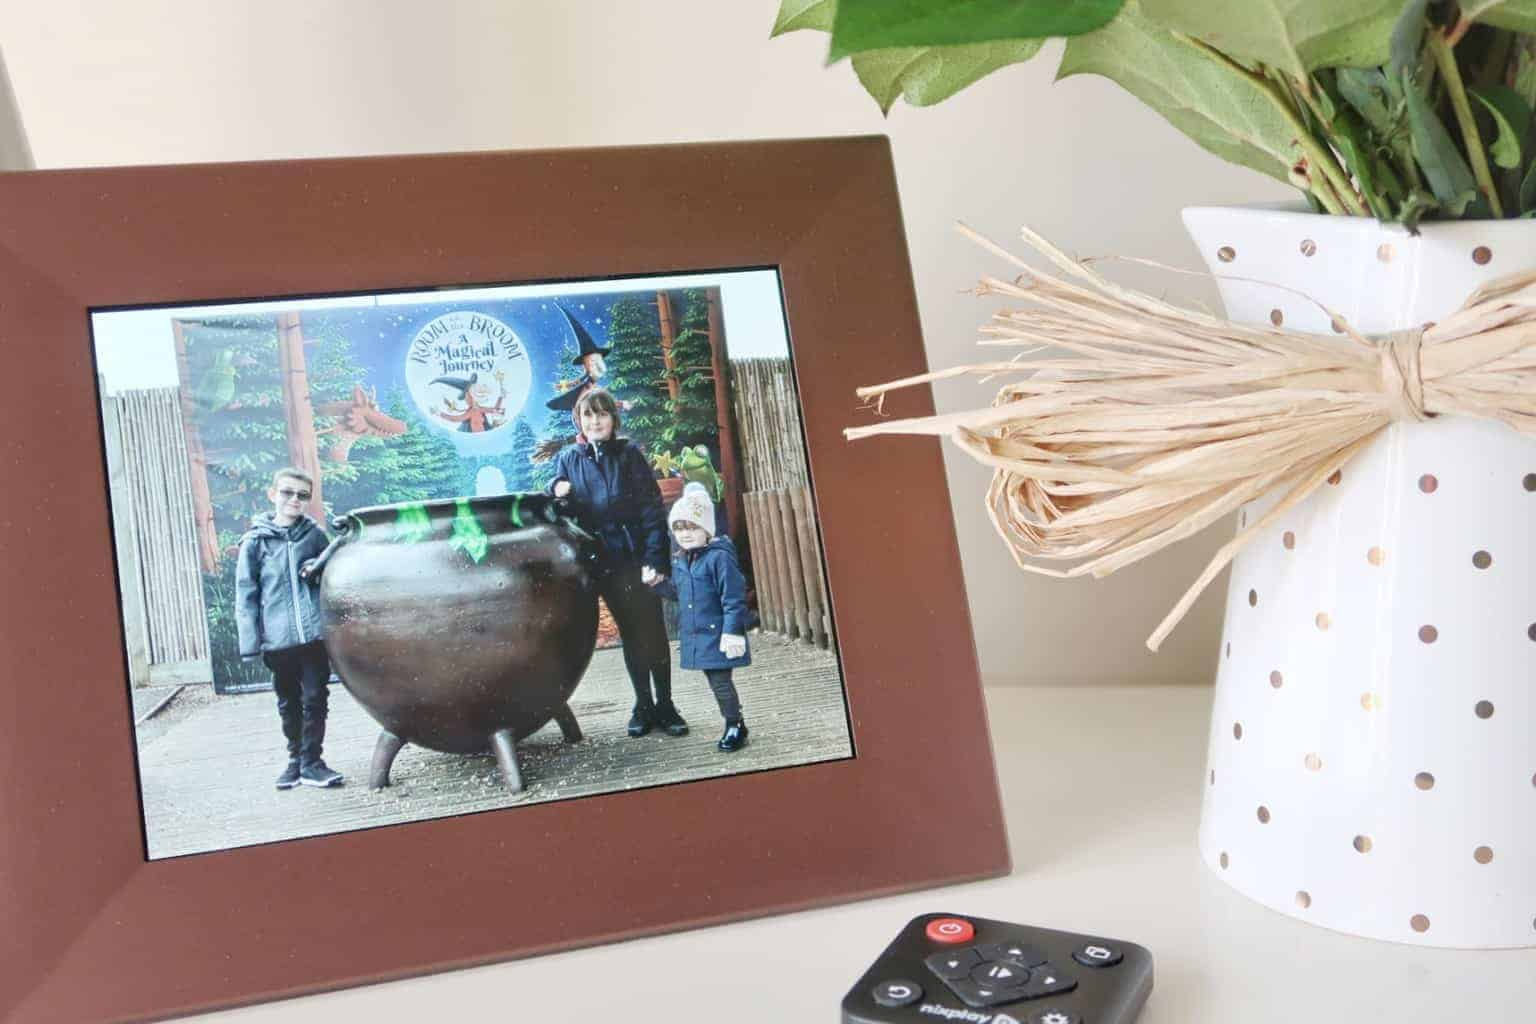 Unlocking my camera feed with the NIXPLAY Iris WiFi Smart Digital Photo Frame [AD-GIFTED] + #Giveaway